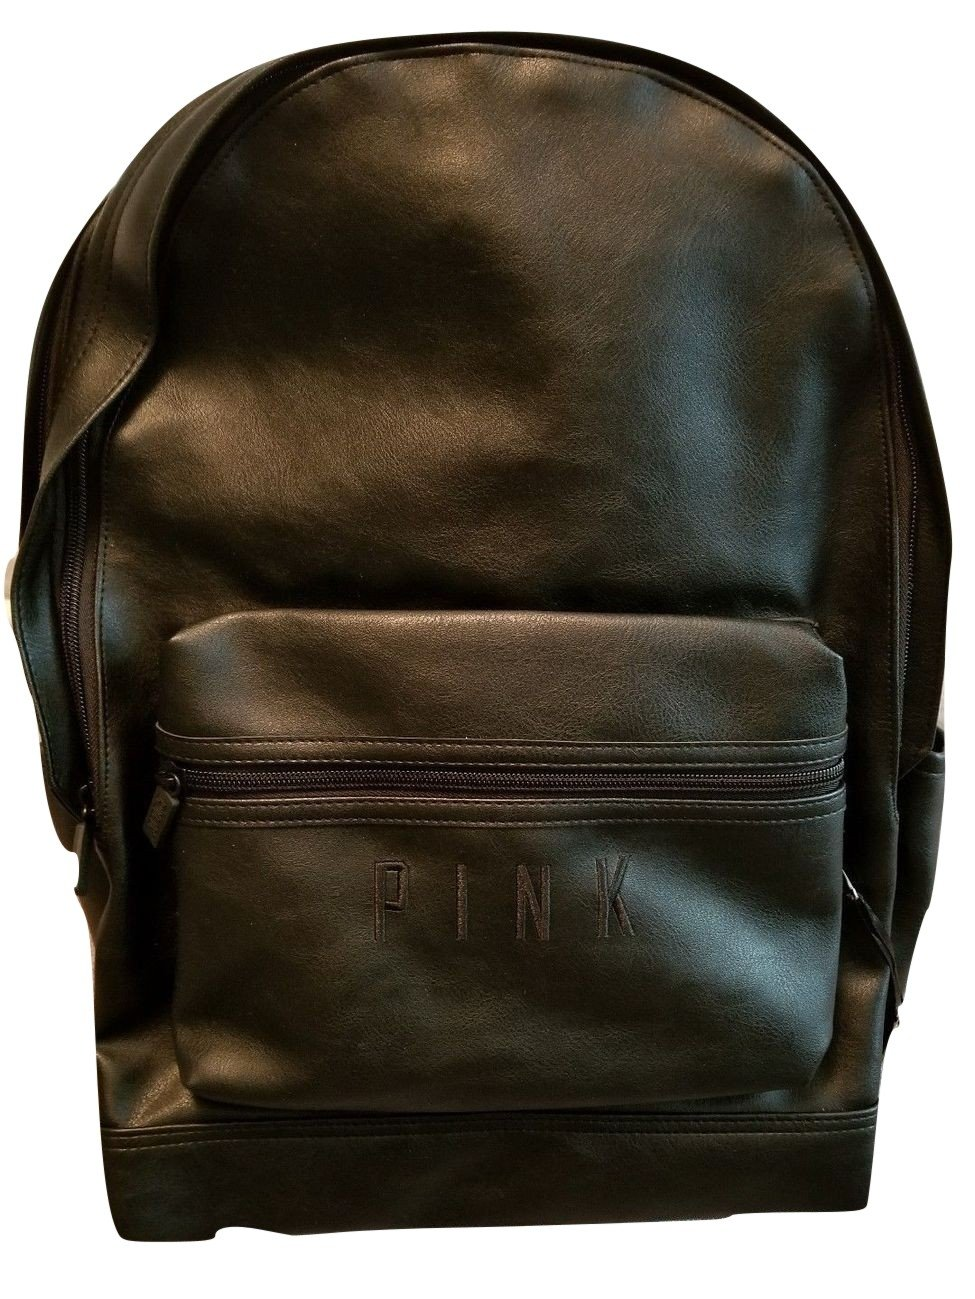 Victorias Secret PINK Campus Backpack Faux Leather Black New 2017 Travel Gym VS by VS Pink